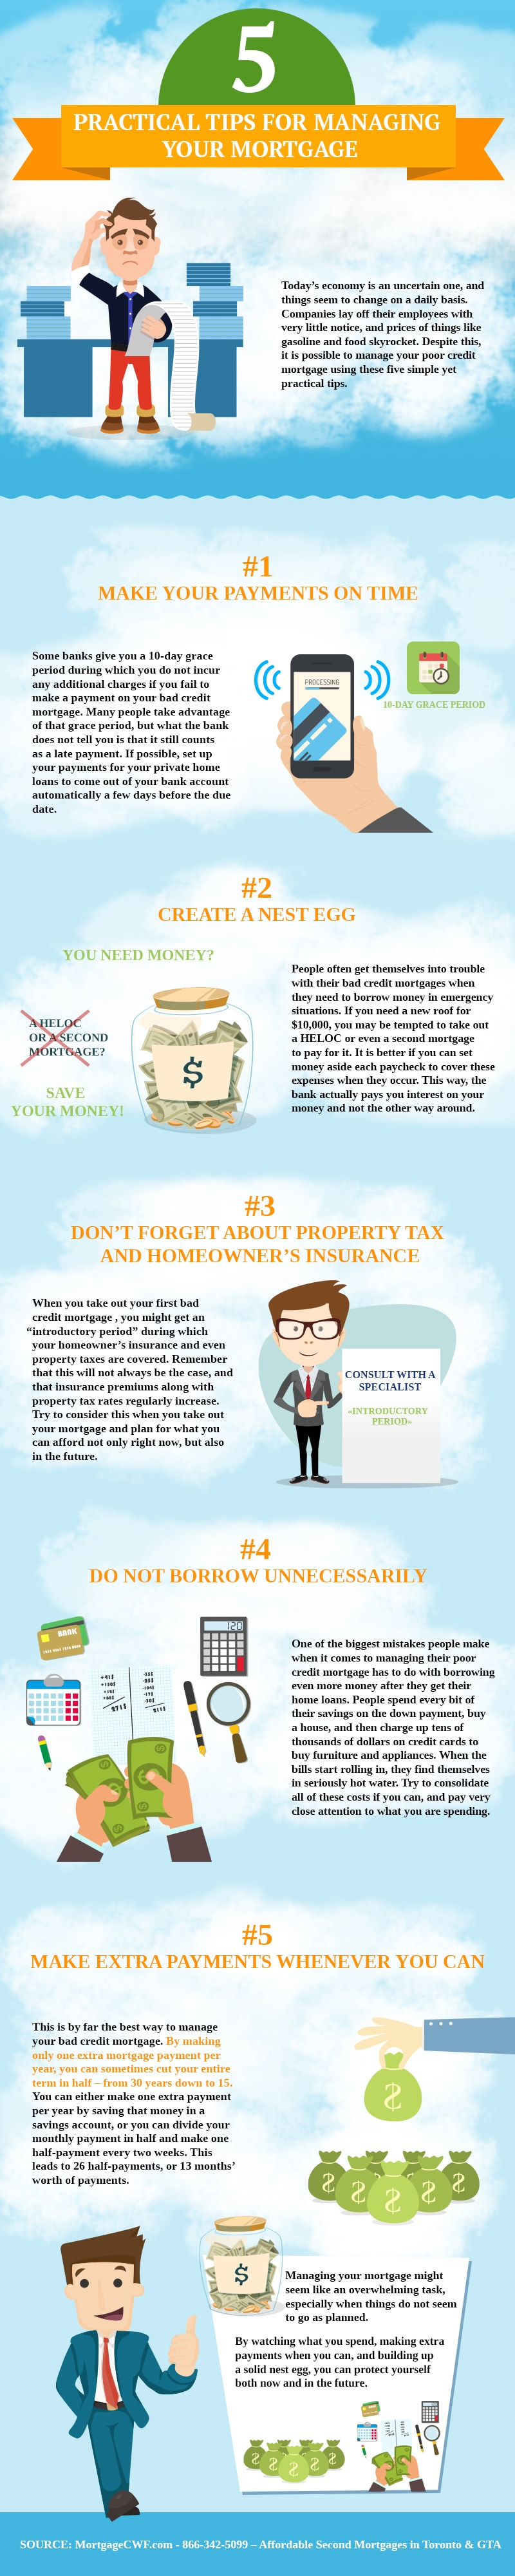 5 Simple Yet Practical Tips for Managing Your Mortgage - Infographic